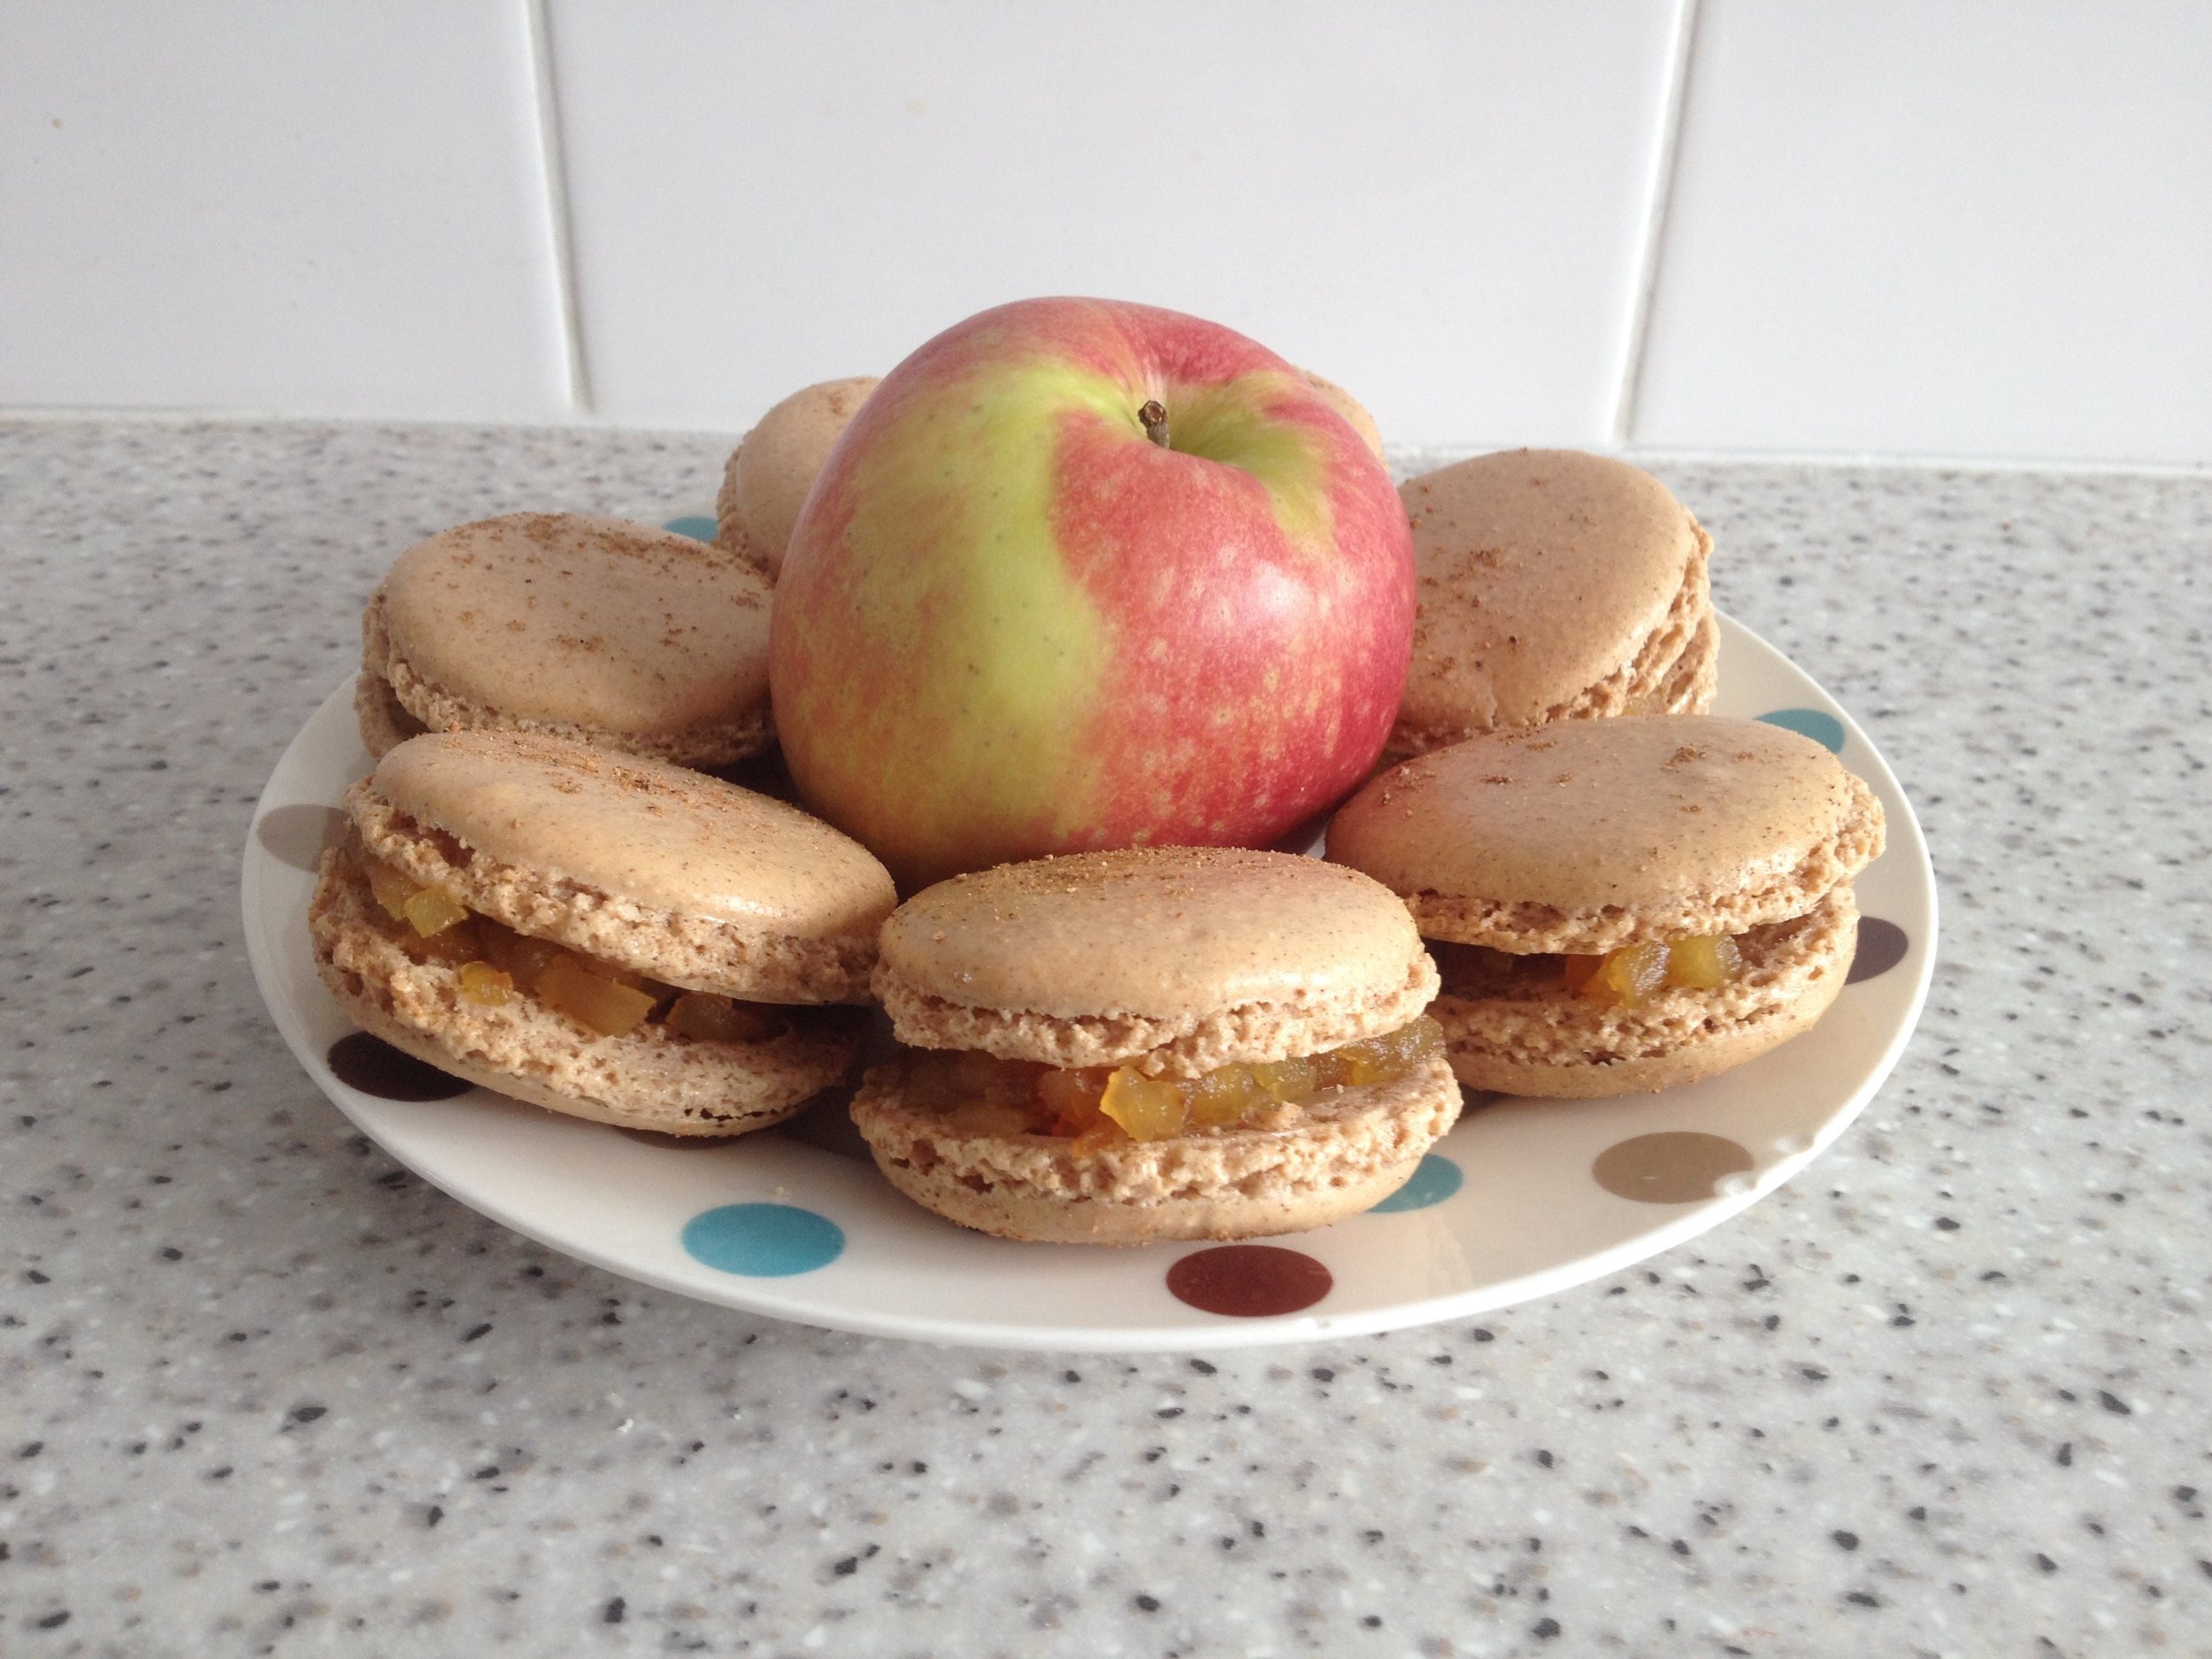 Apple pie macarons